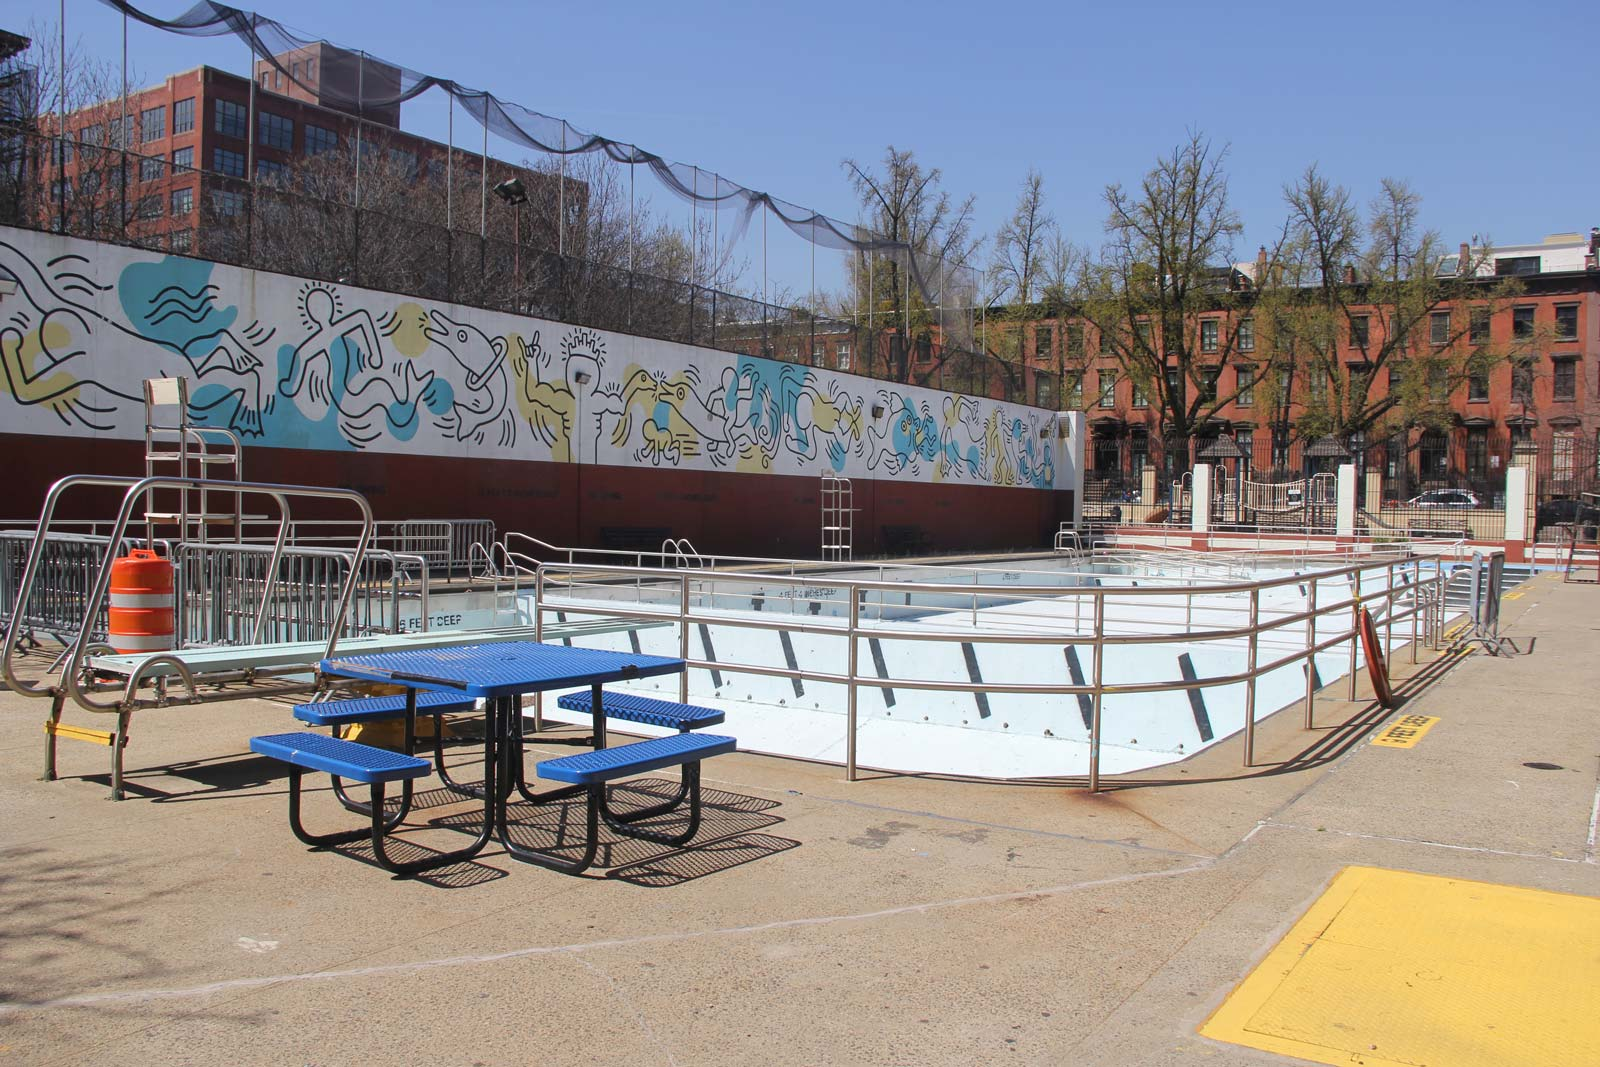 Pool at Dapolito Recreation Center